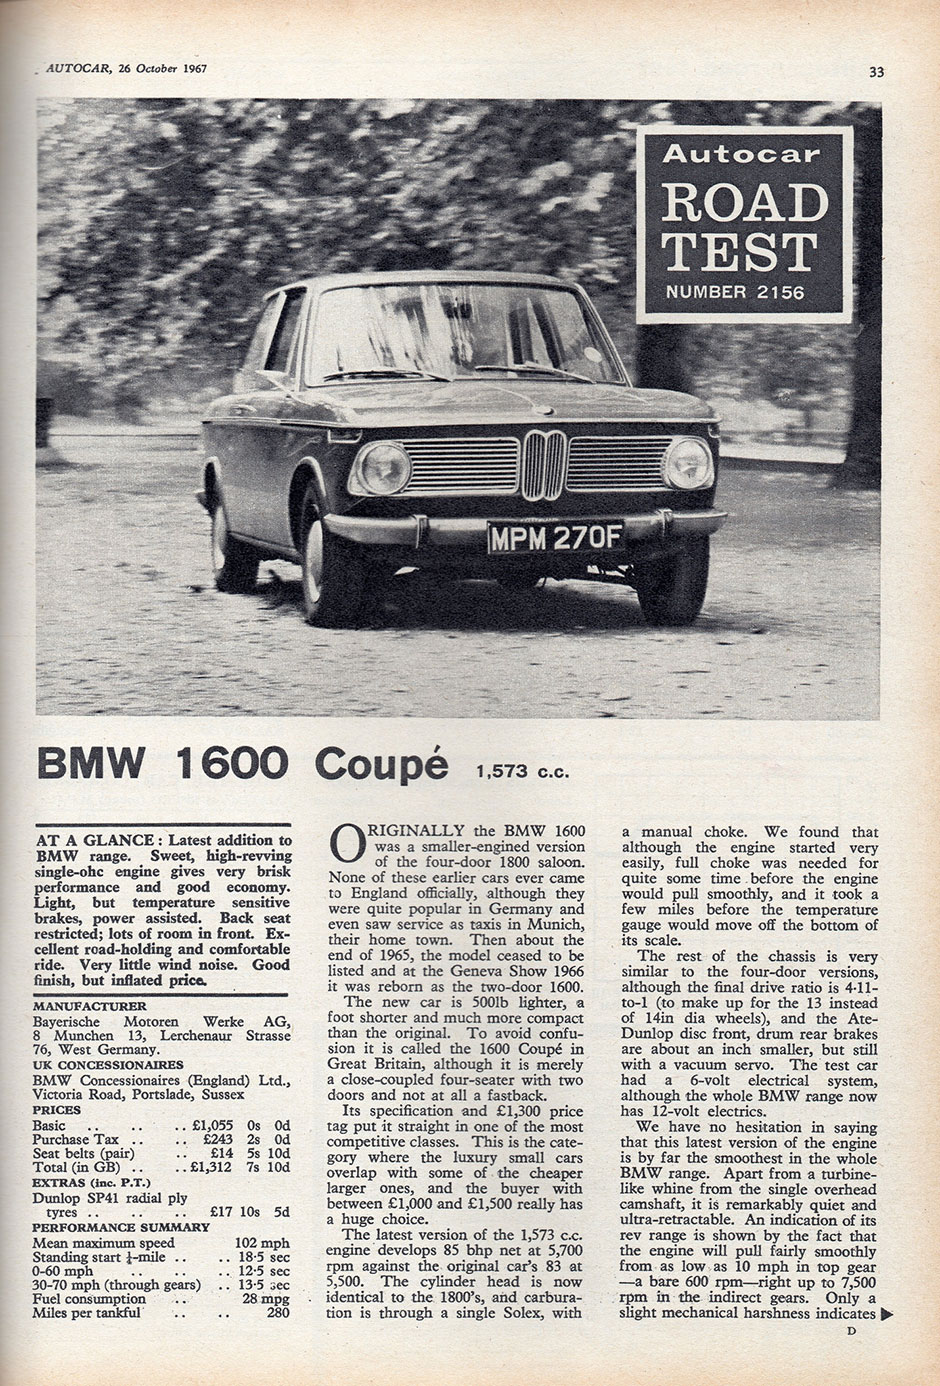 BMW 1600 Coupe